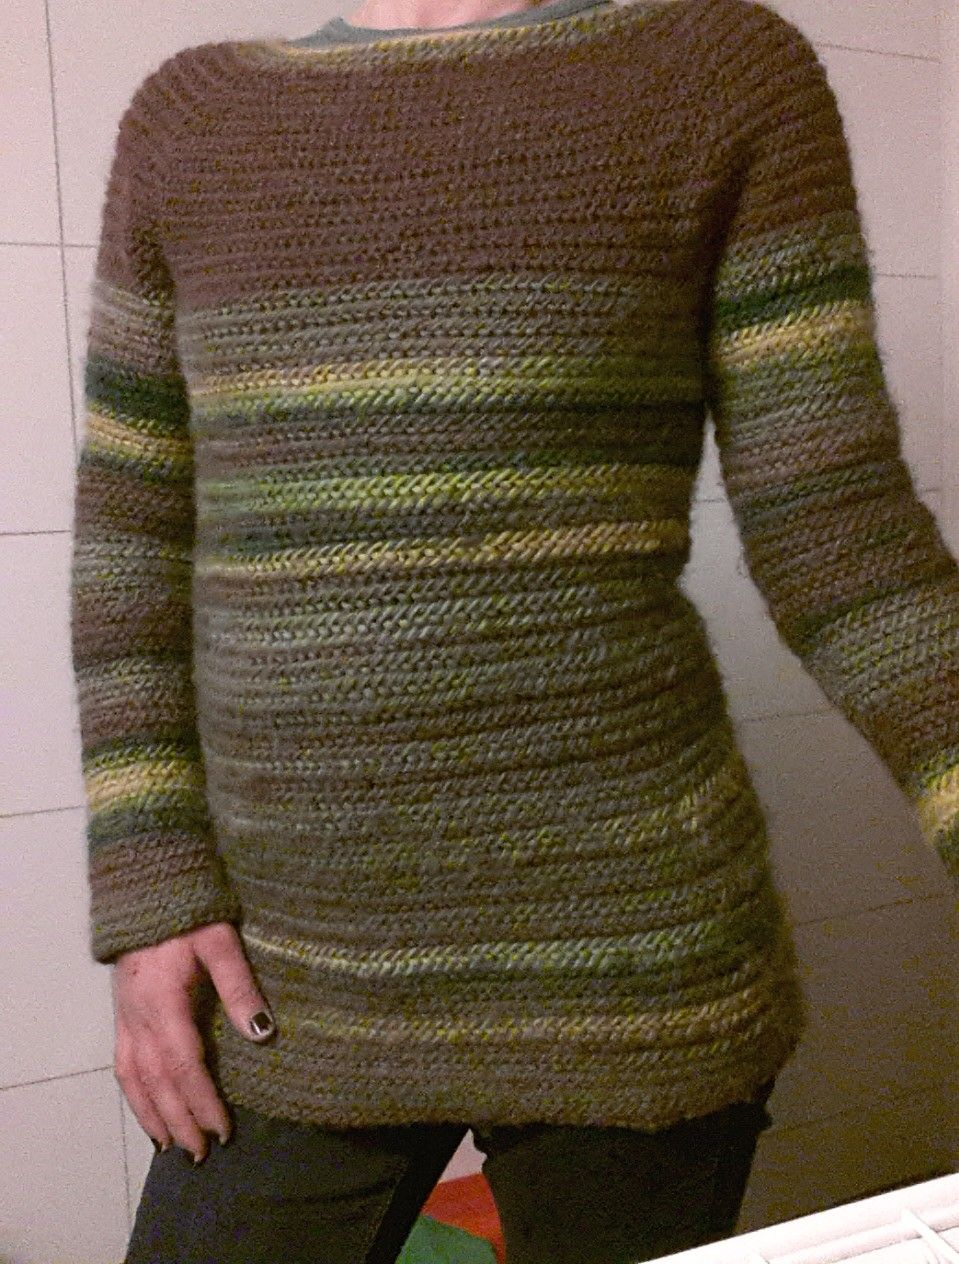 43ce27d0a0 Needlebound / nalbound sweater made with multi-coloured Odin yarn ...